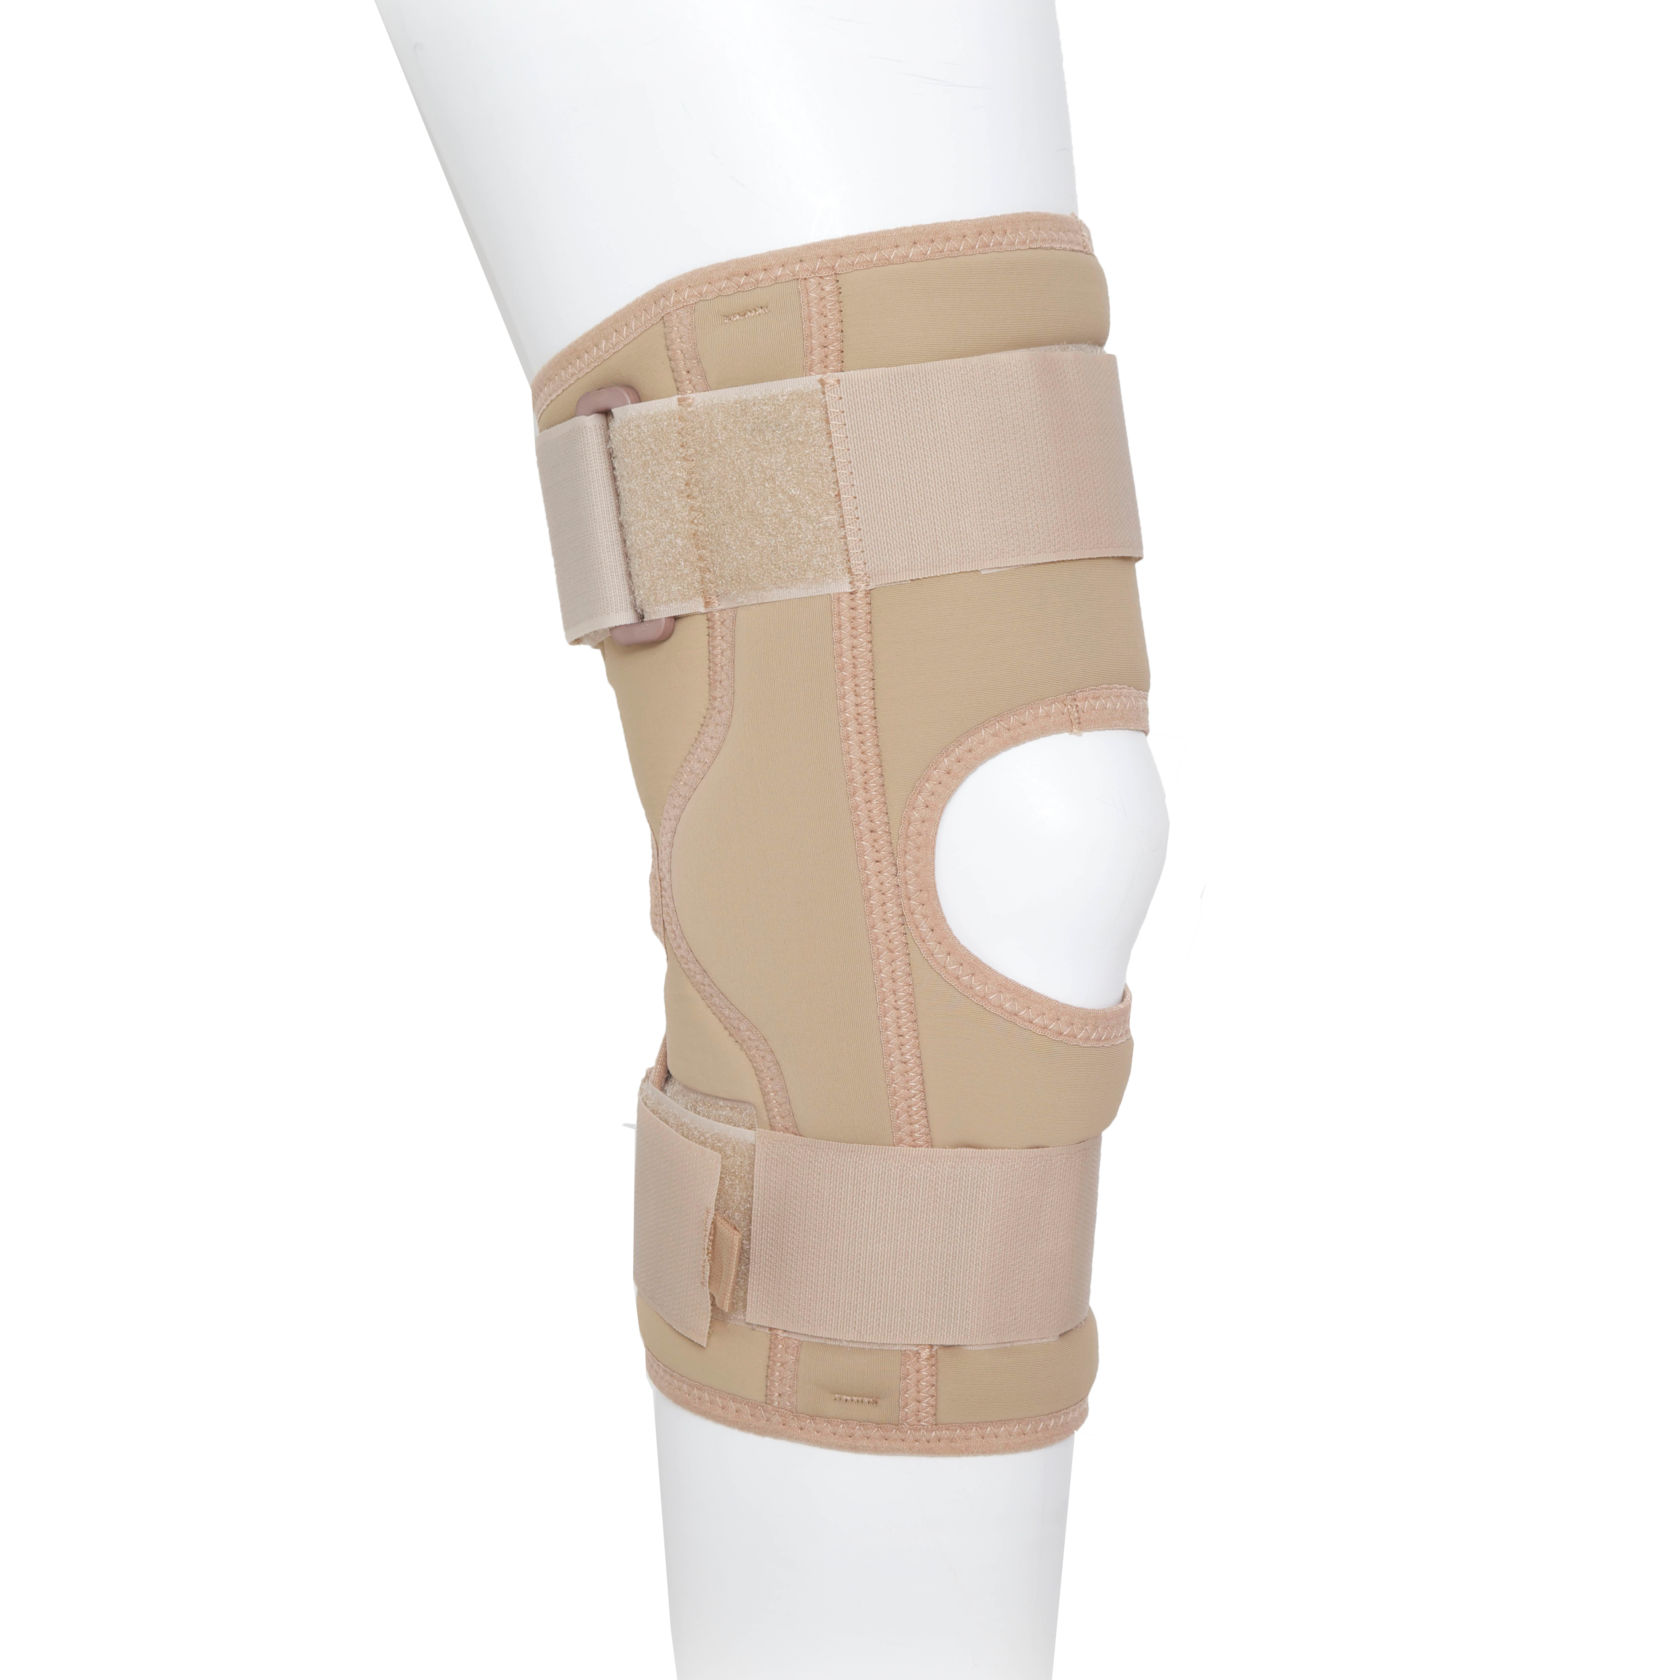 Orthowrap™ Knee Supports